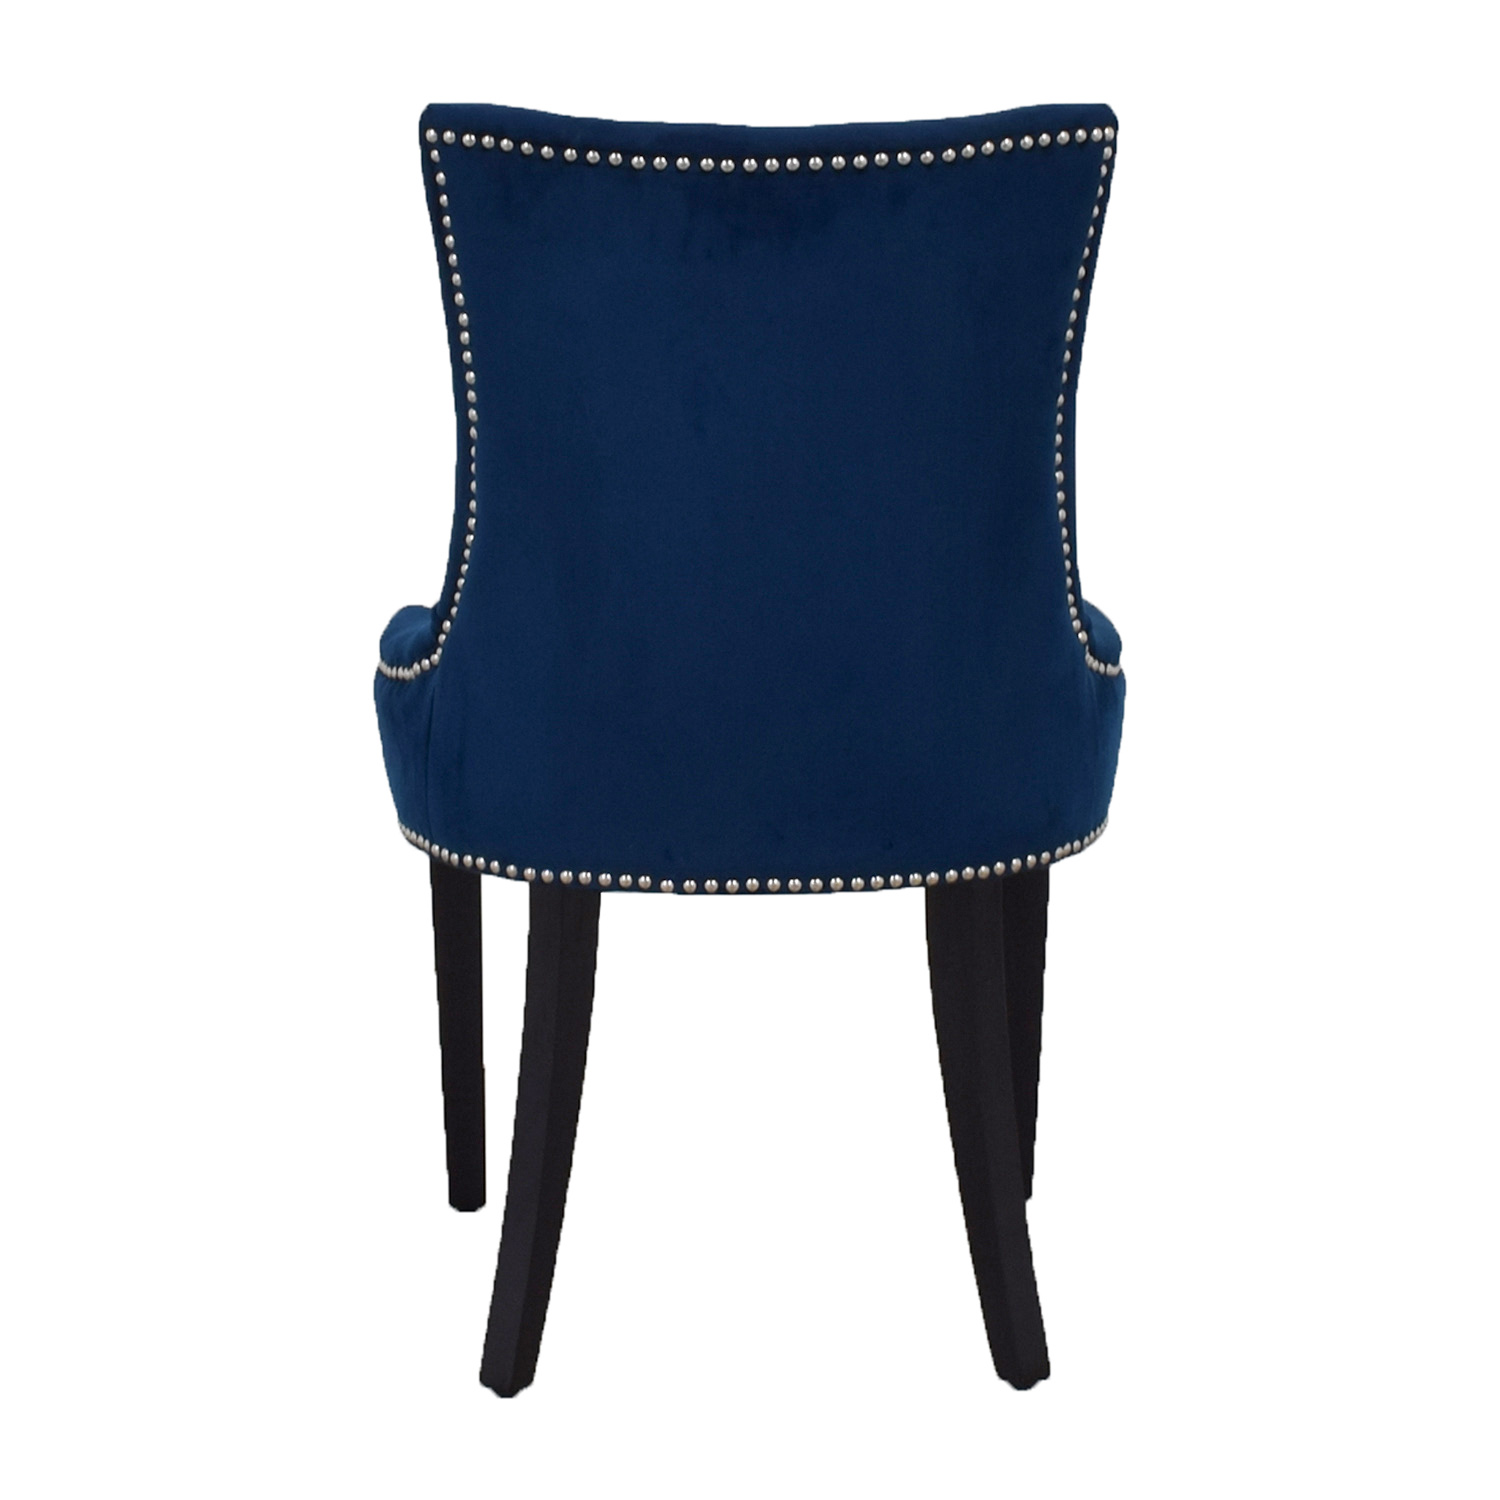 Safavieh Safavieh Blue Nailhead Velvet Accent Chair second hand